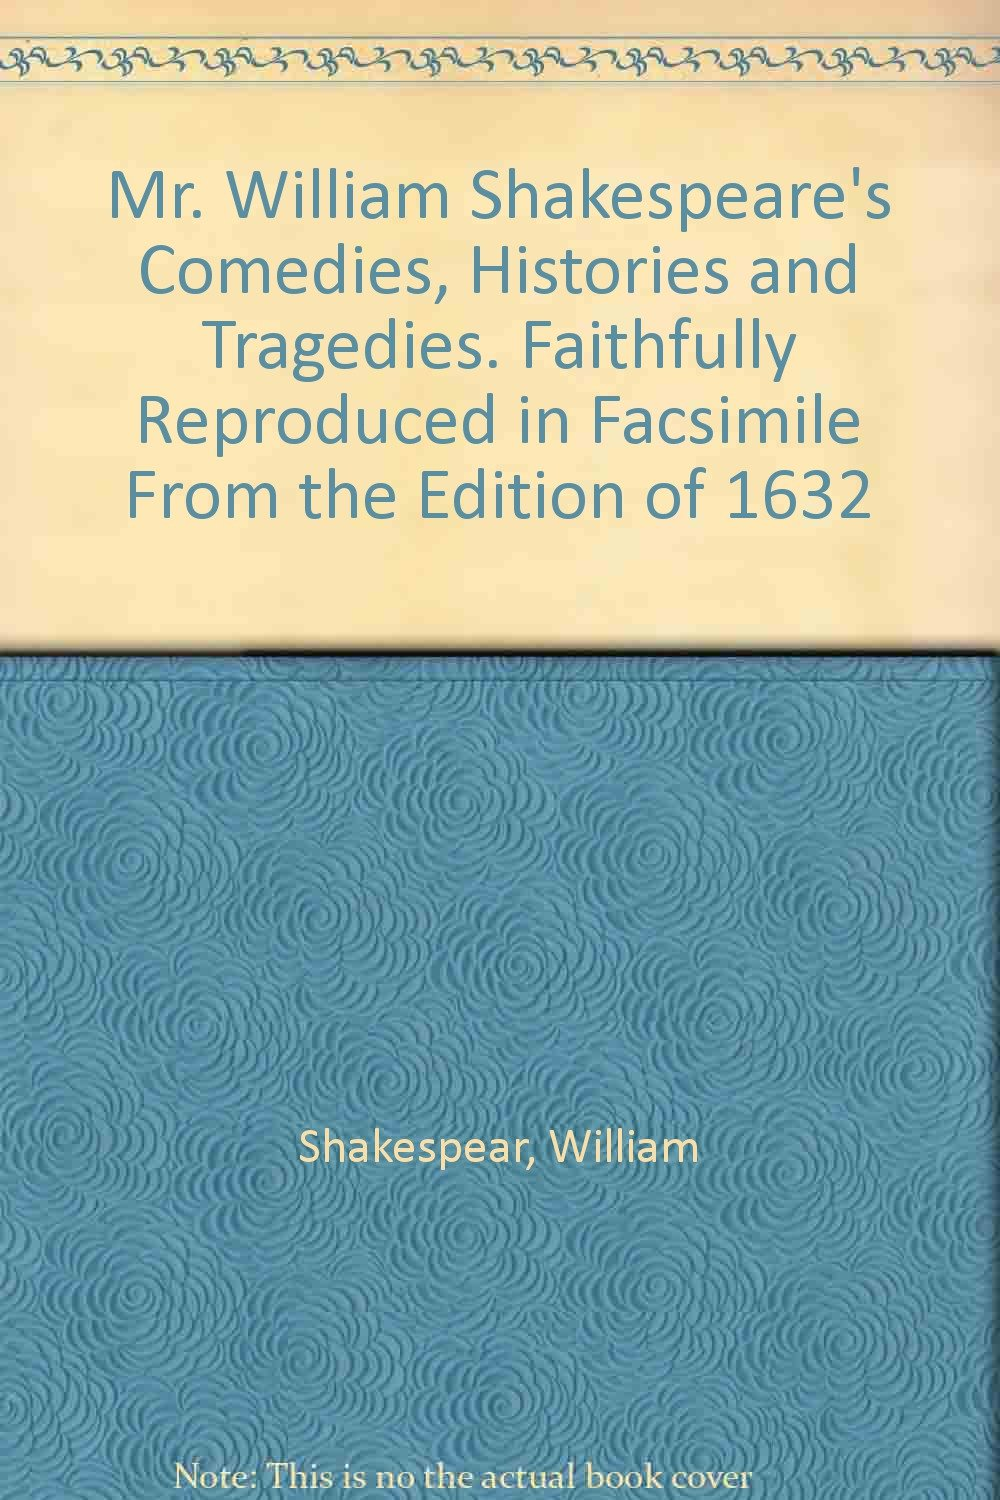 Download Mr. William Shakespeare's Comedies, Histories and Tragedies. Faithfully Reproduced in Facsimile From the Edition of 1632 pdf